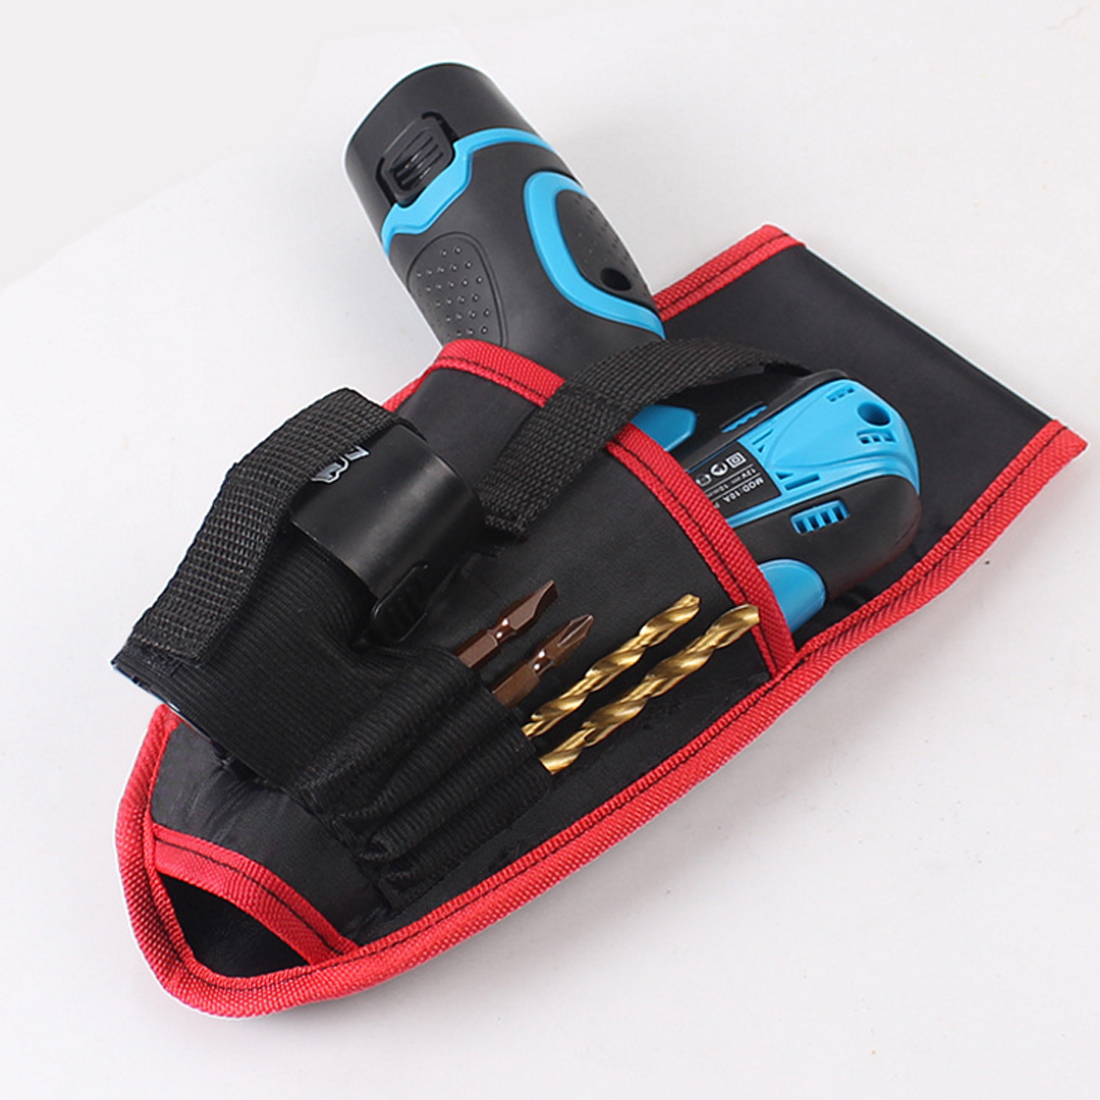 1pcs Portable Cordless Drill Holder Holst Tool Pouch For 12V Drill Screwdriver Waist Tool Bag High Qualtiy td new design electricians waist pocket tool belt pouch bag screwdriver carry case holder outdoor working free shipping